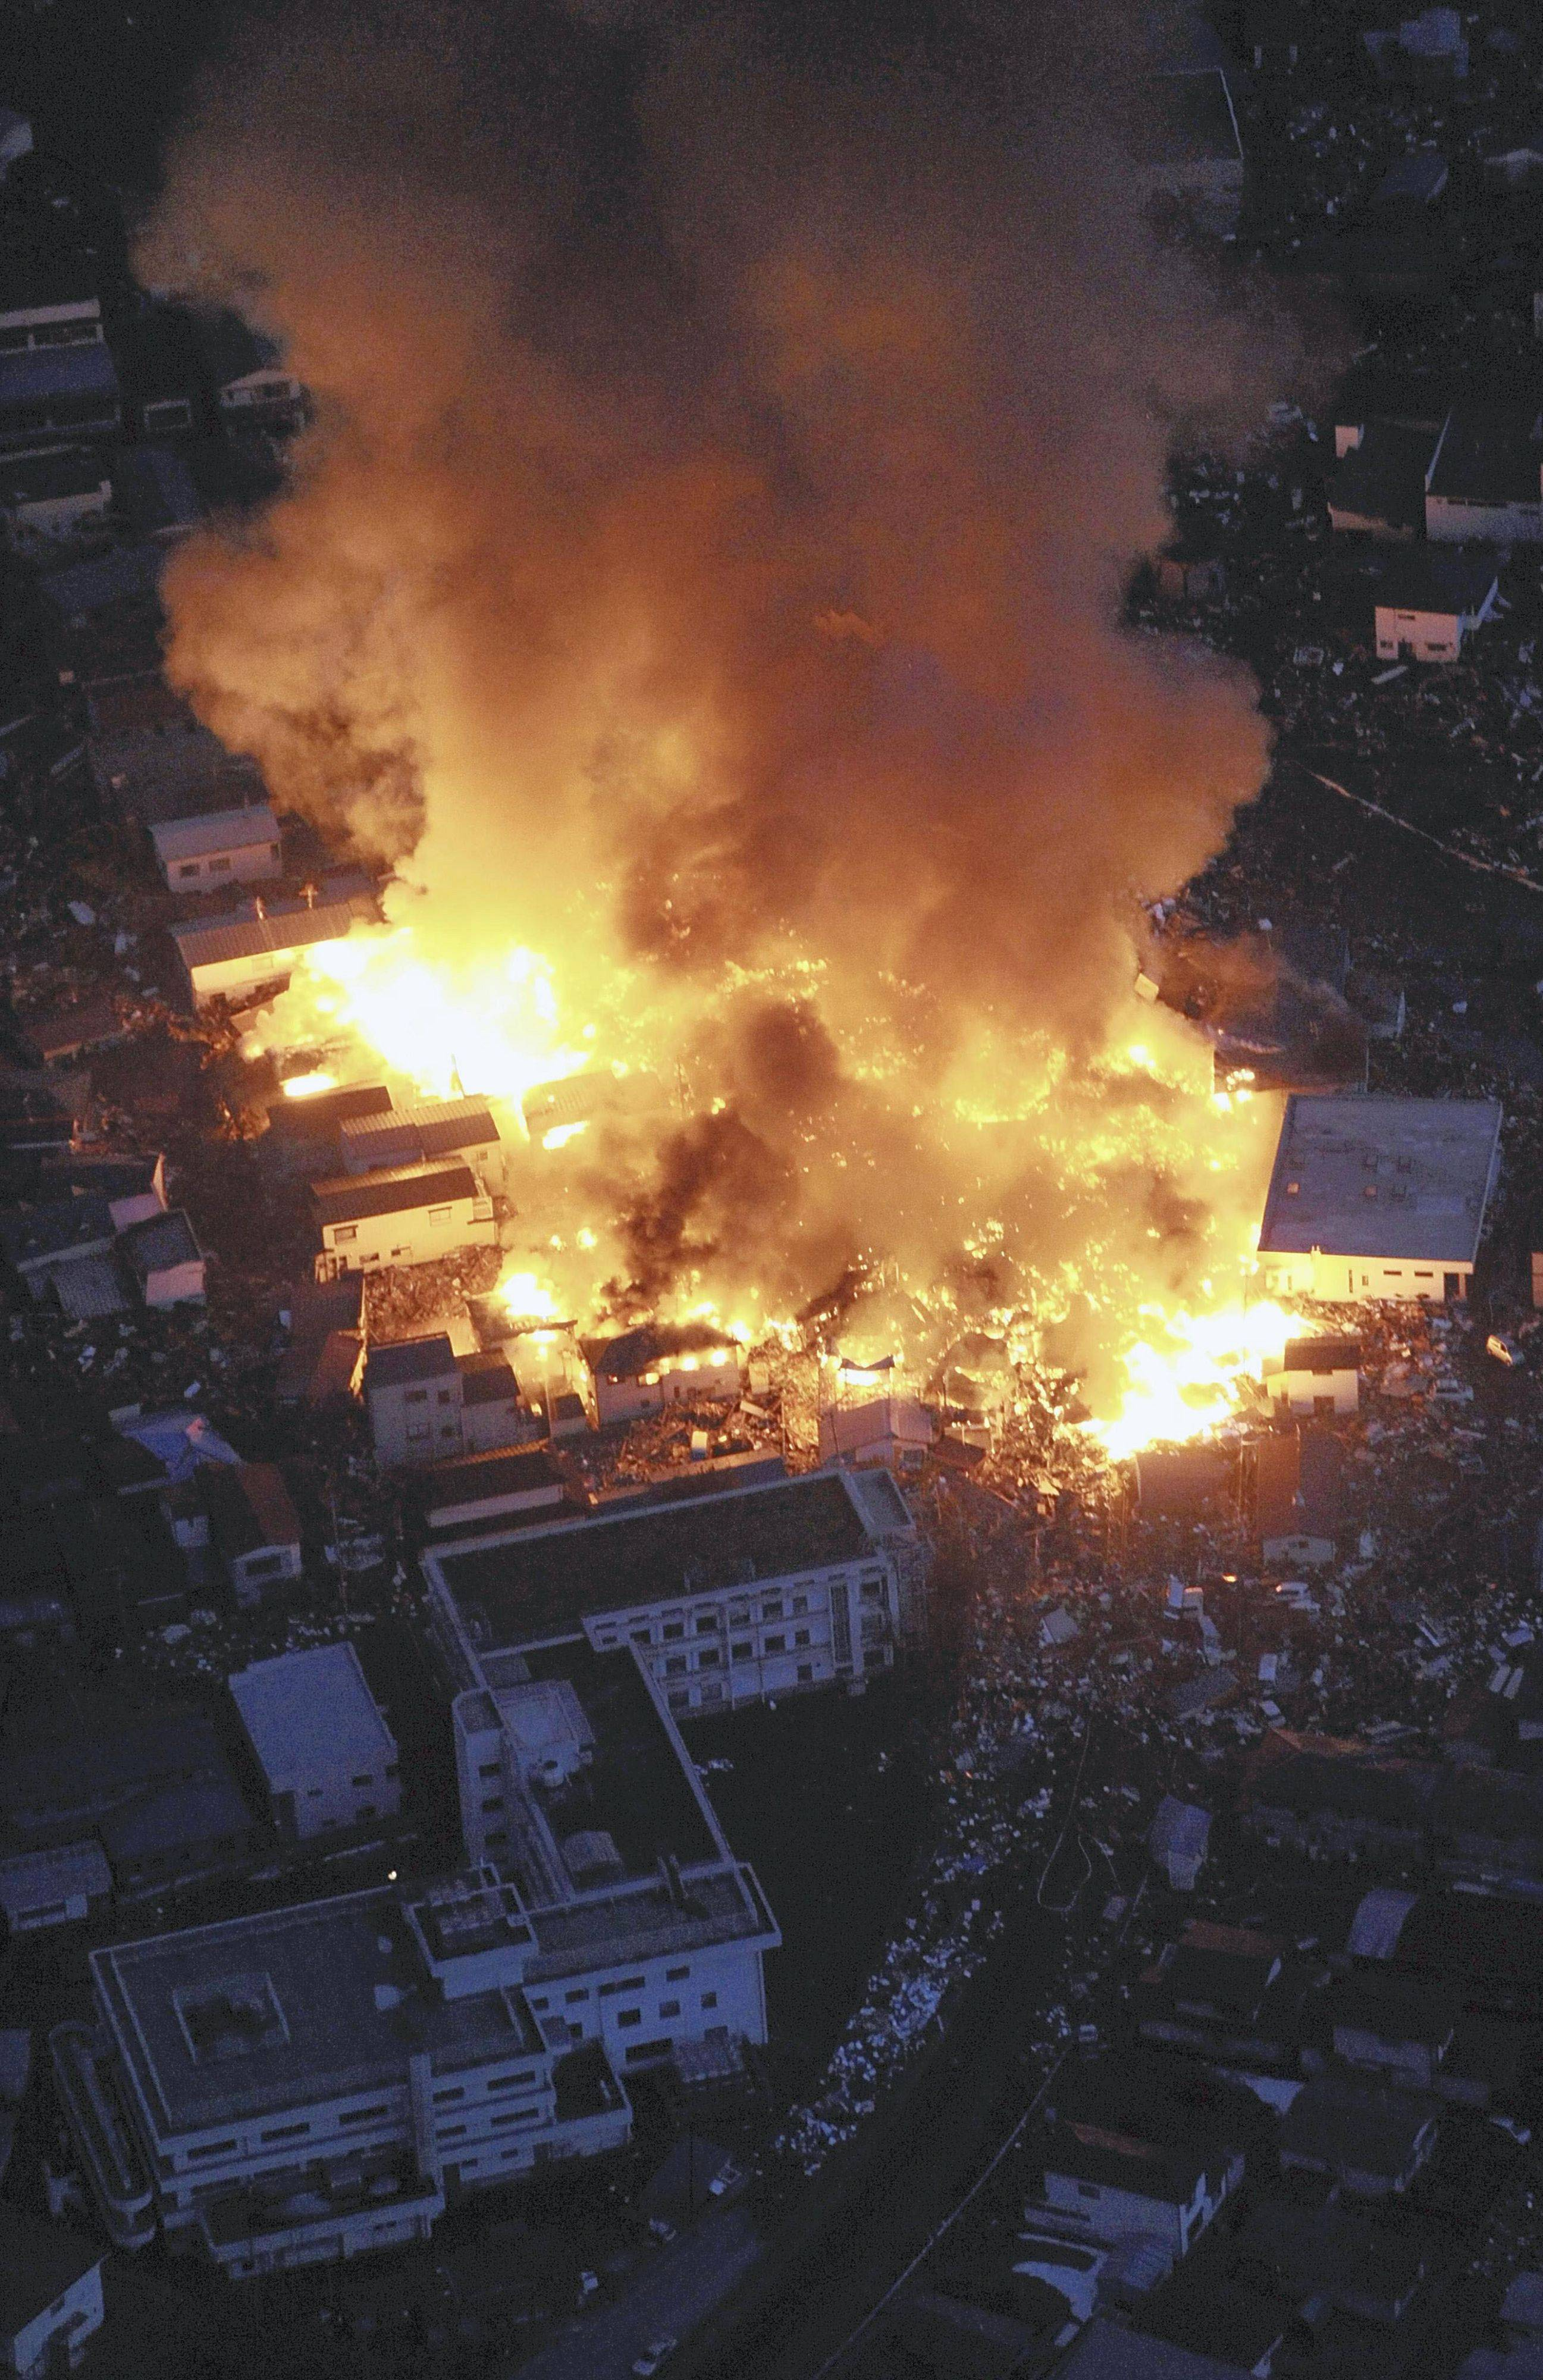 Flames rise from houses on fire after powerful earthquakes hit Yamada, Iwate Prefecture, northern Japan, Friday, March 11, 2011.